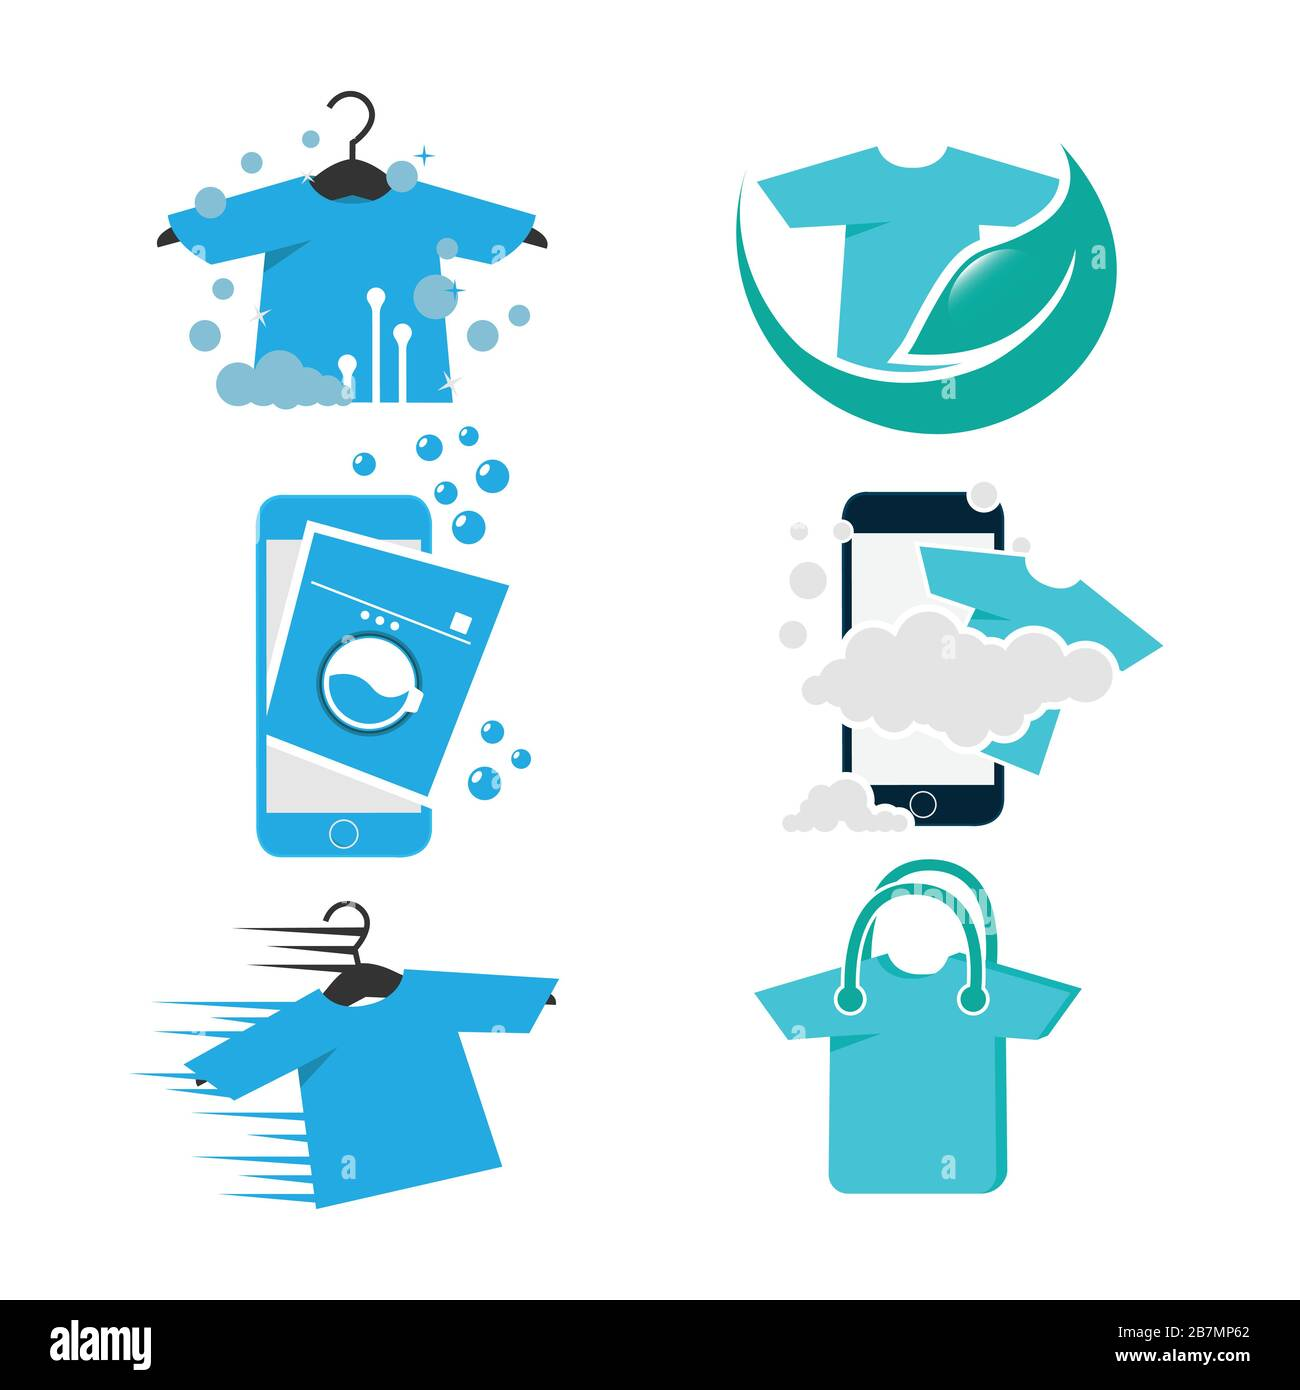 set laundry logo template design cleaning vector image set of modern laundry logo washing concept design vector image stock vector image art alamy https www alamy com set laundry logo template design cleaning vector image set of modern laundry logo washing concept design vector image image348966410 html